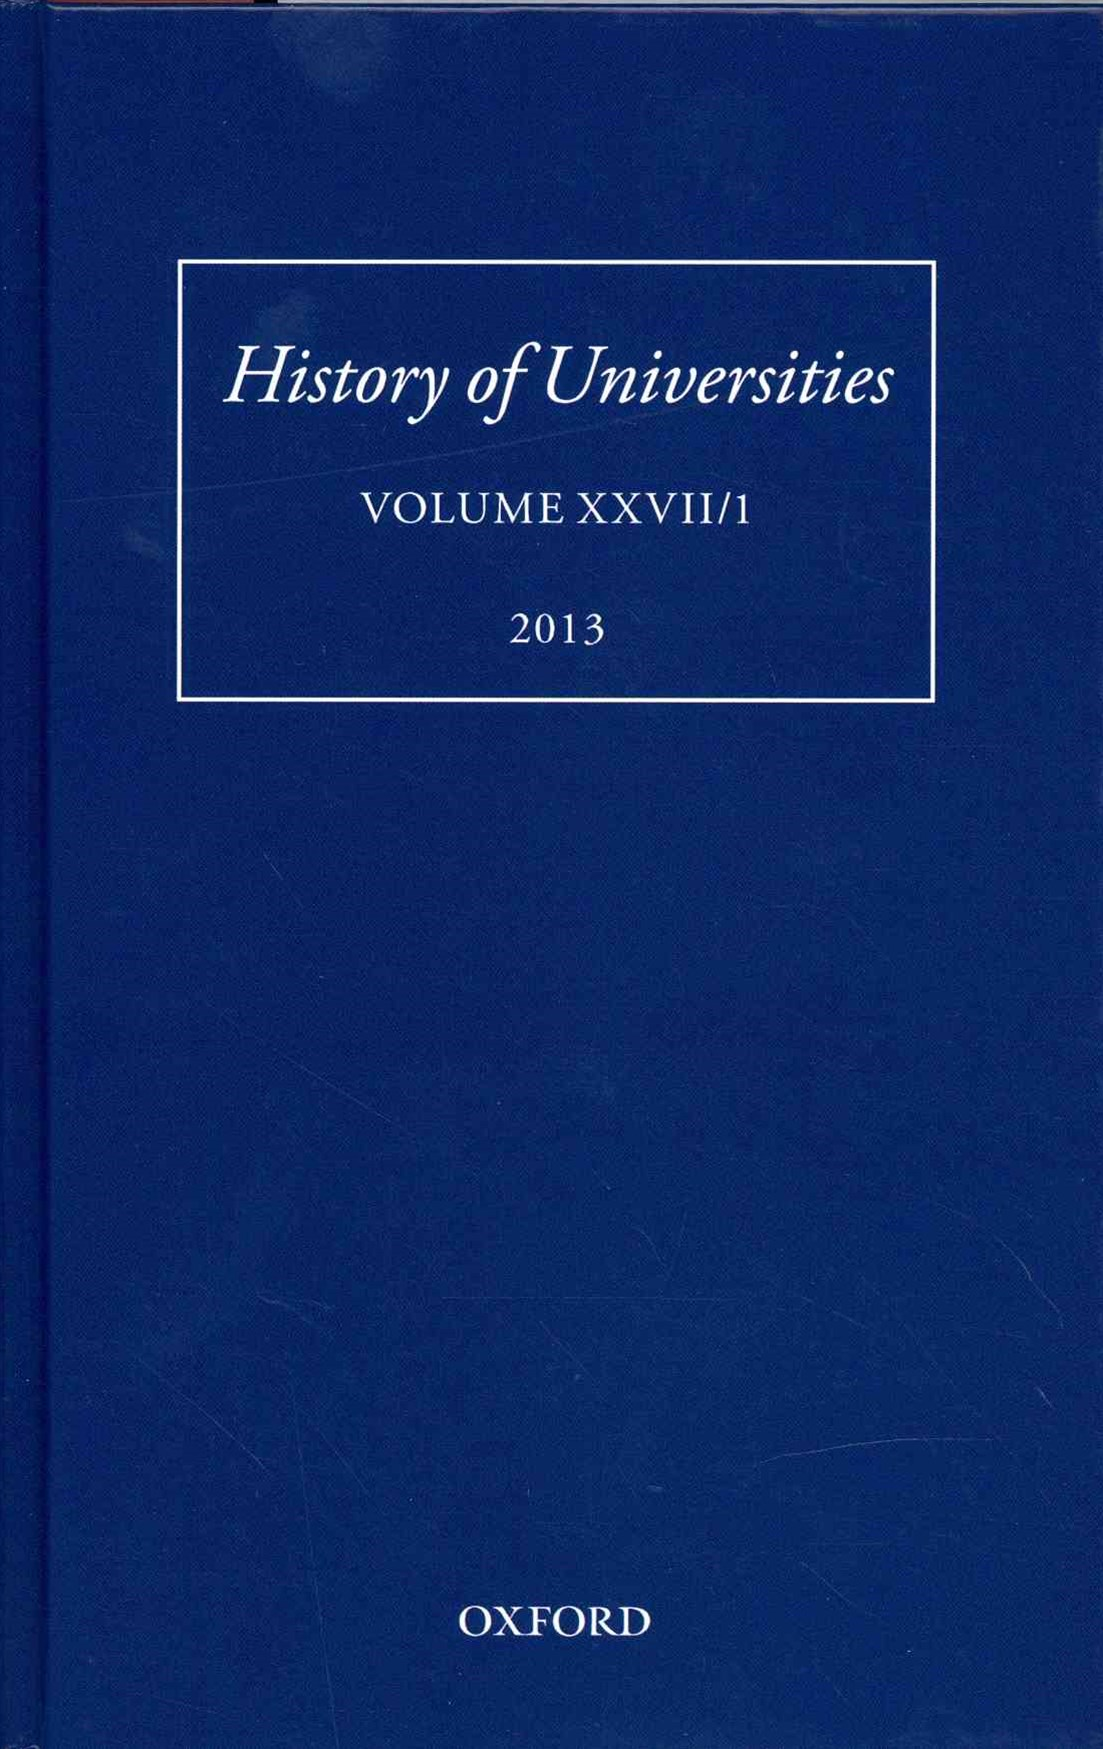 History of Universities, Volume XXVII/1